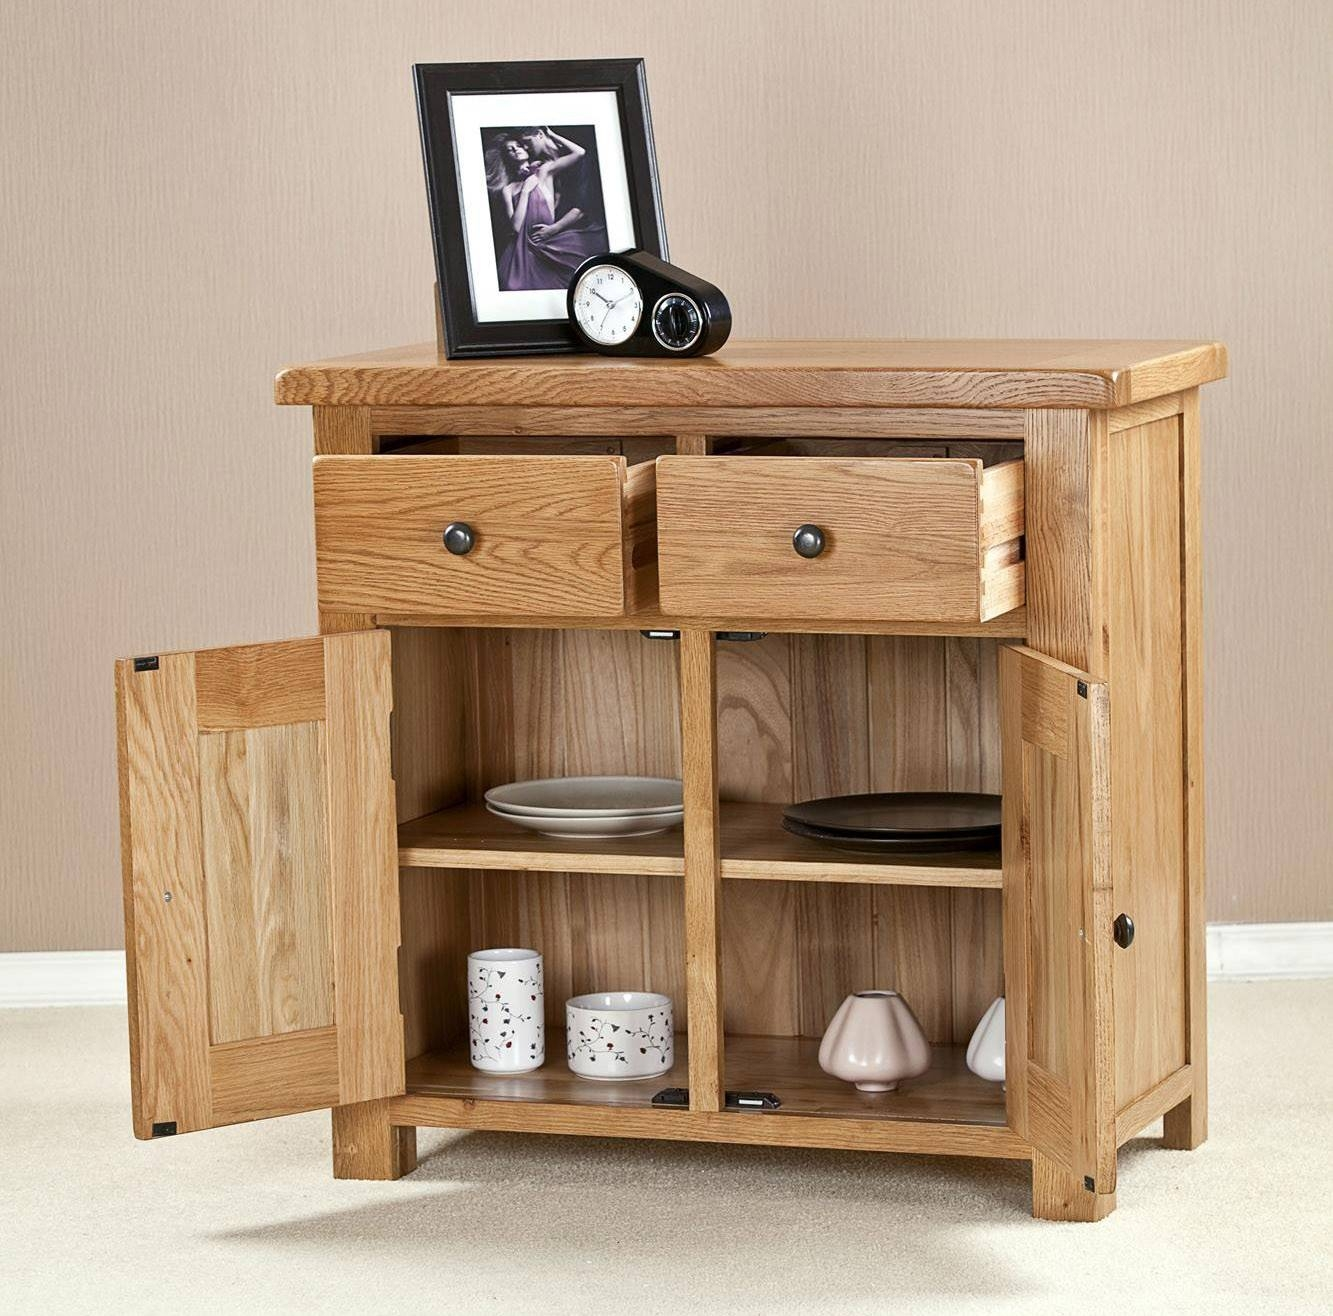 Cotswold Solid Oak 2 Door 2 Drawer Small Sideboard in Small Wooden Sideboards (Image 12 of 30)